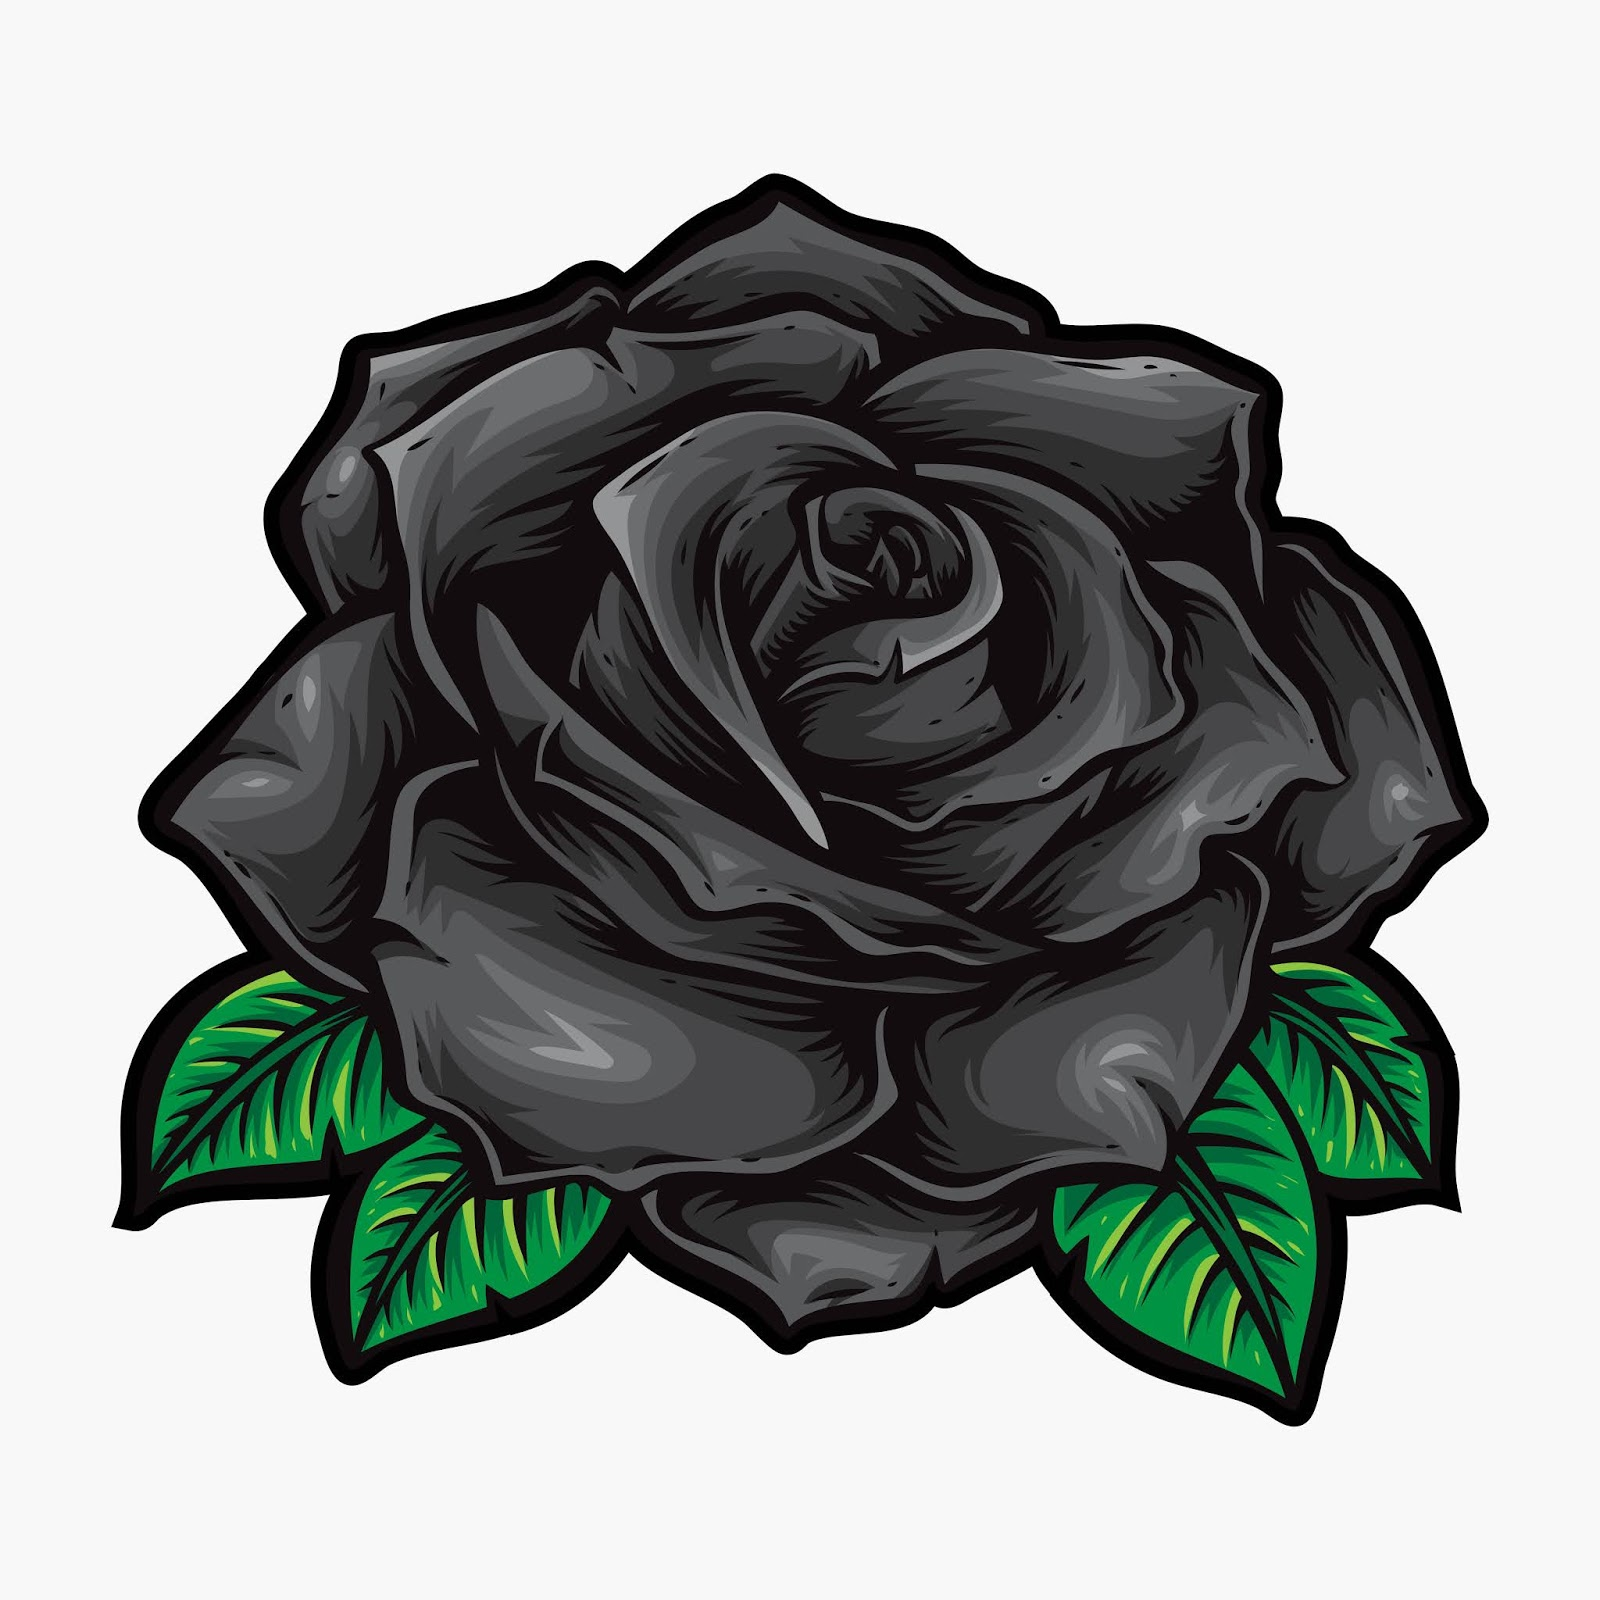 Black Roses Vector Flower Logo Free Download Vector CDR, AI, EPS and PNG Formats